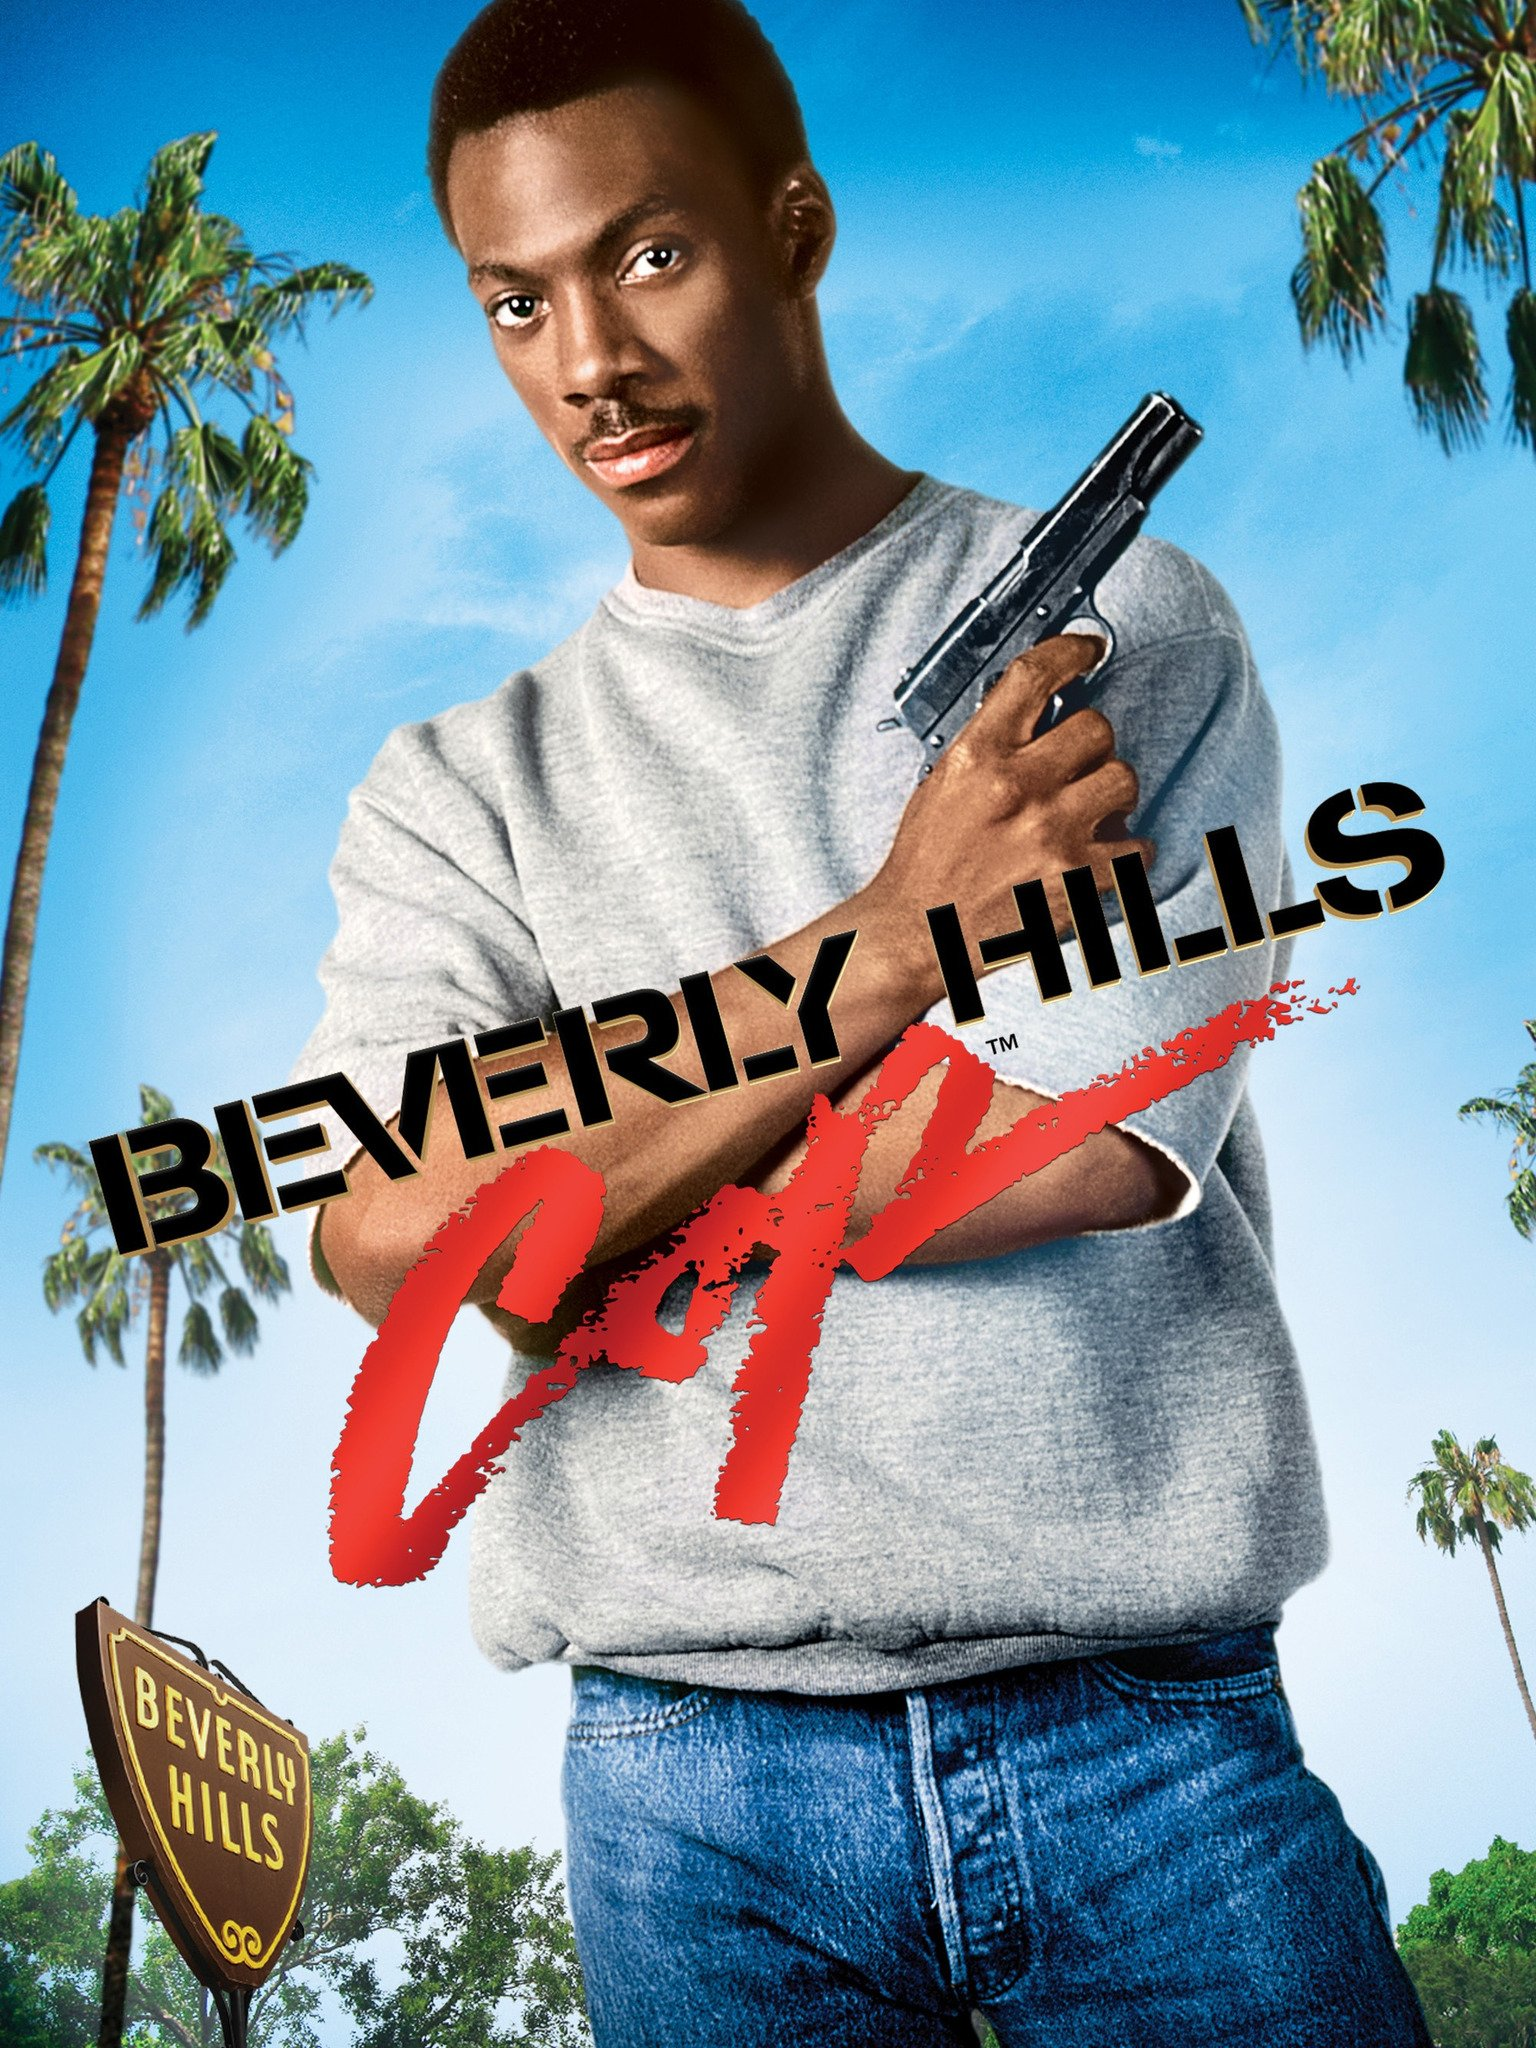 Le Flic De Beverly Hills 2 Streaming : beverly, hills, streaming, Beverly, Hills, (1984), Rotten, Tomatoes